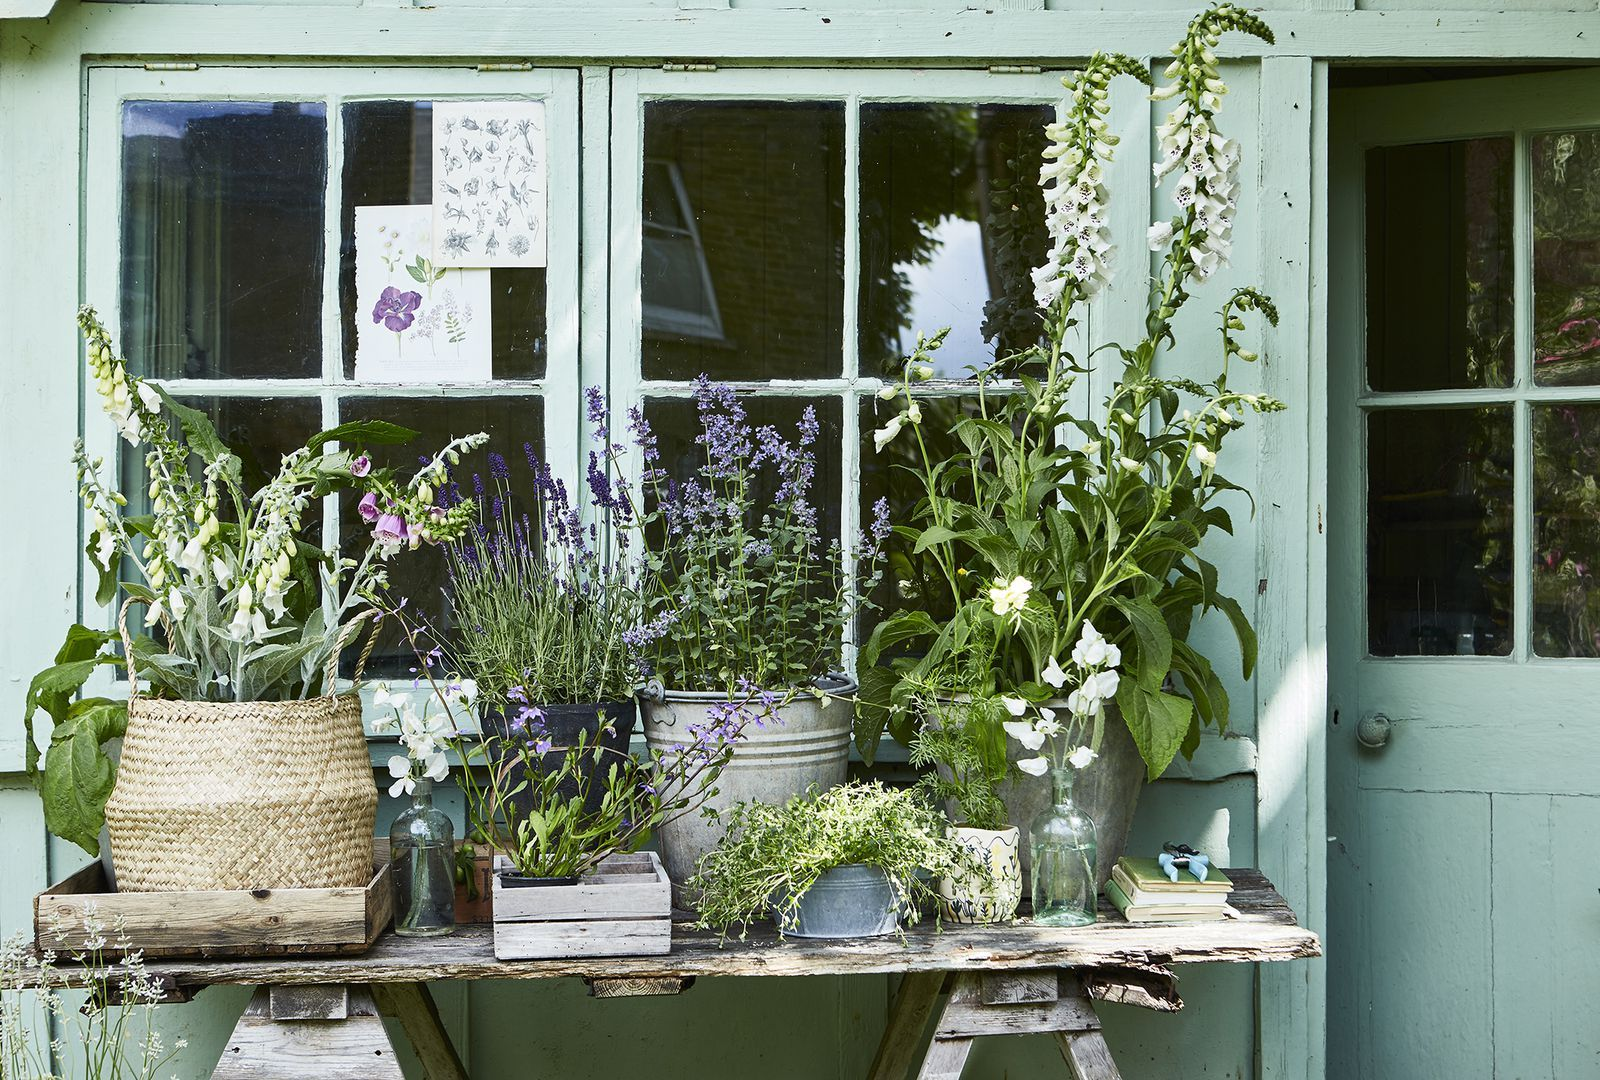 9 Rustic And Vintage Garden Styling Tips Rustic Gardens Vintage Garden Rustic Garden Decor